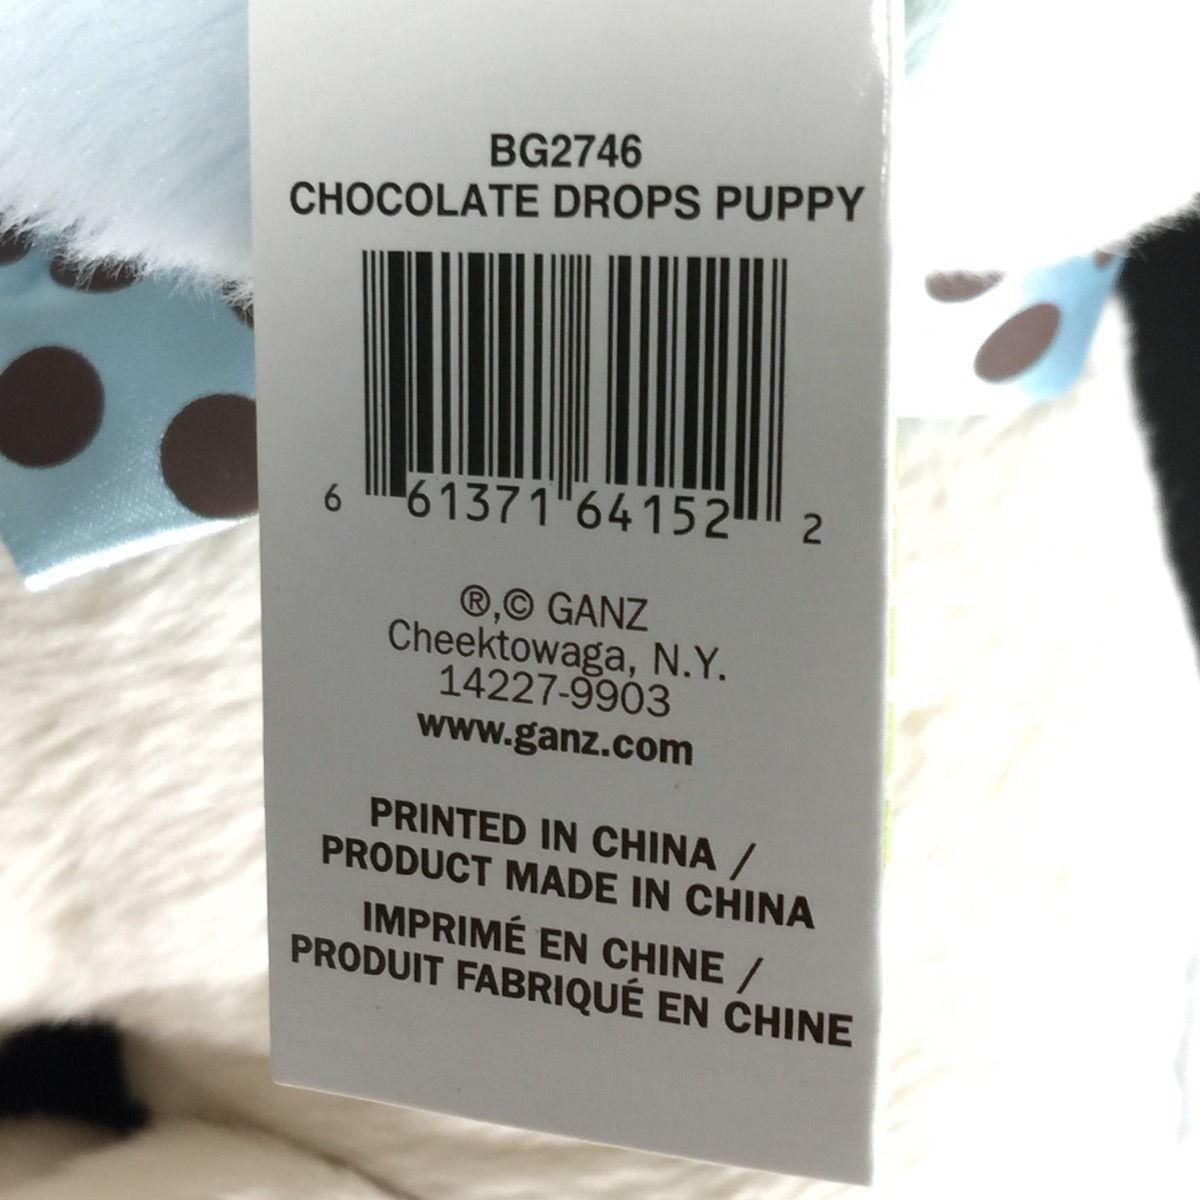 Baby GANZ Stuffed Animal Dog Chocolate Drops Puppy Rattle Blue Plush New Toy image 5